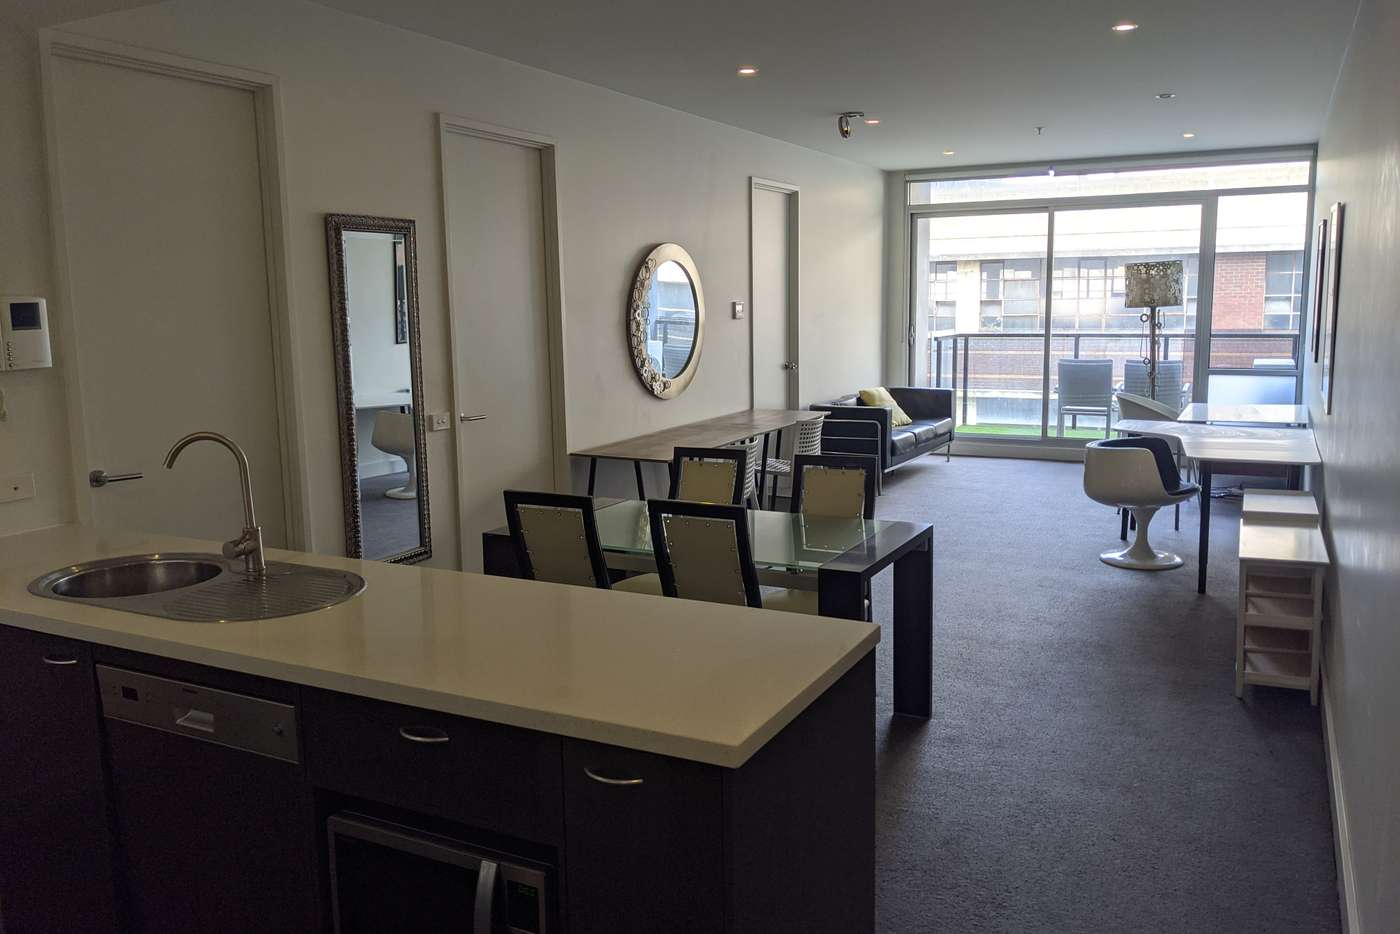 Main view of Homely apartment listing, 301/95 Berkeley St, Melbourne VIC 3000